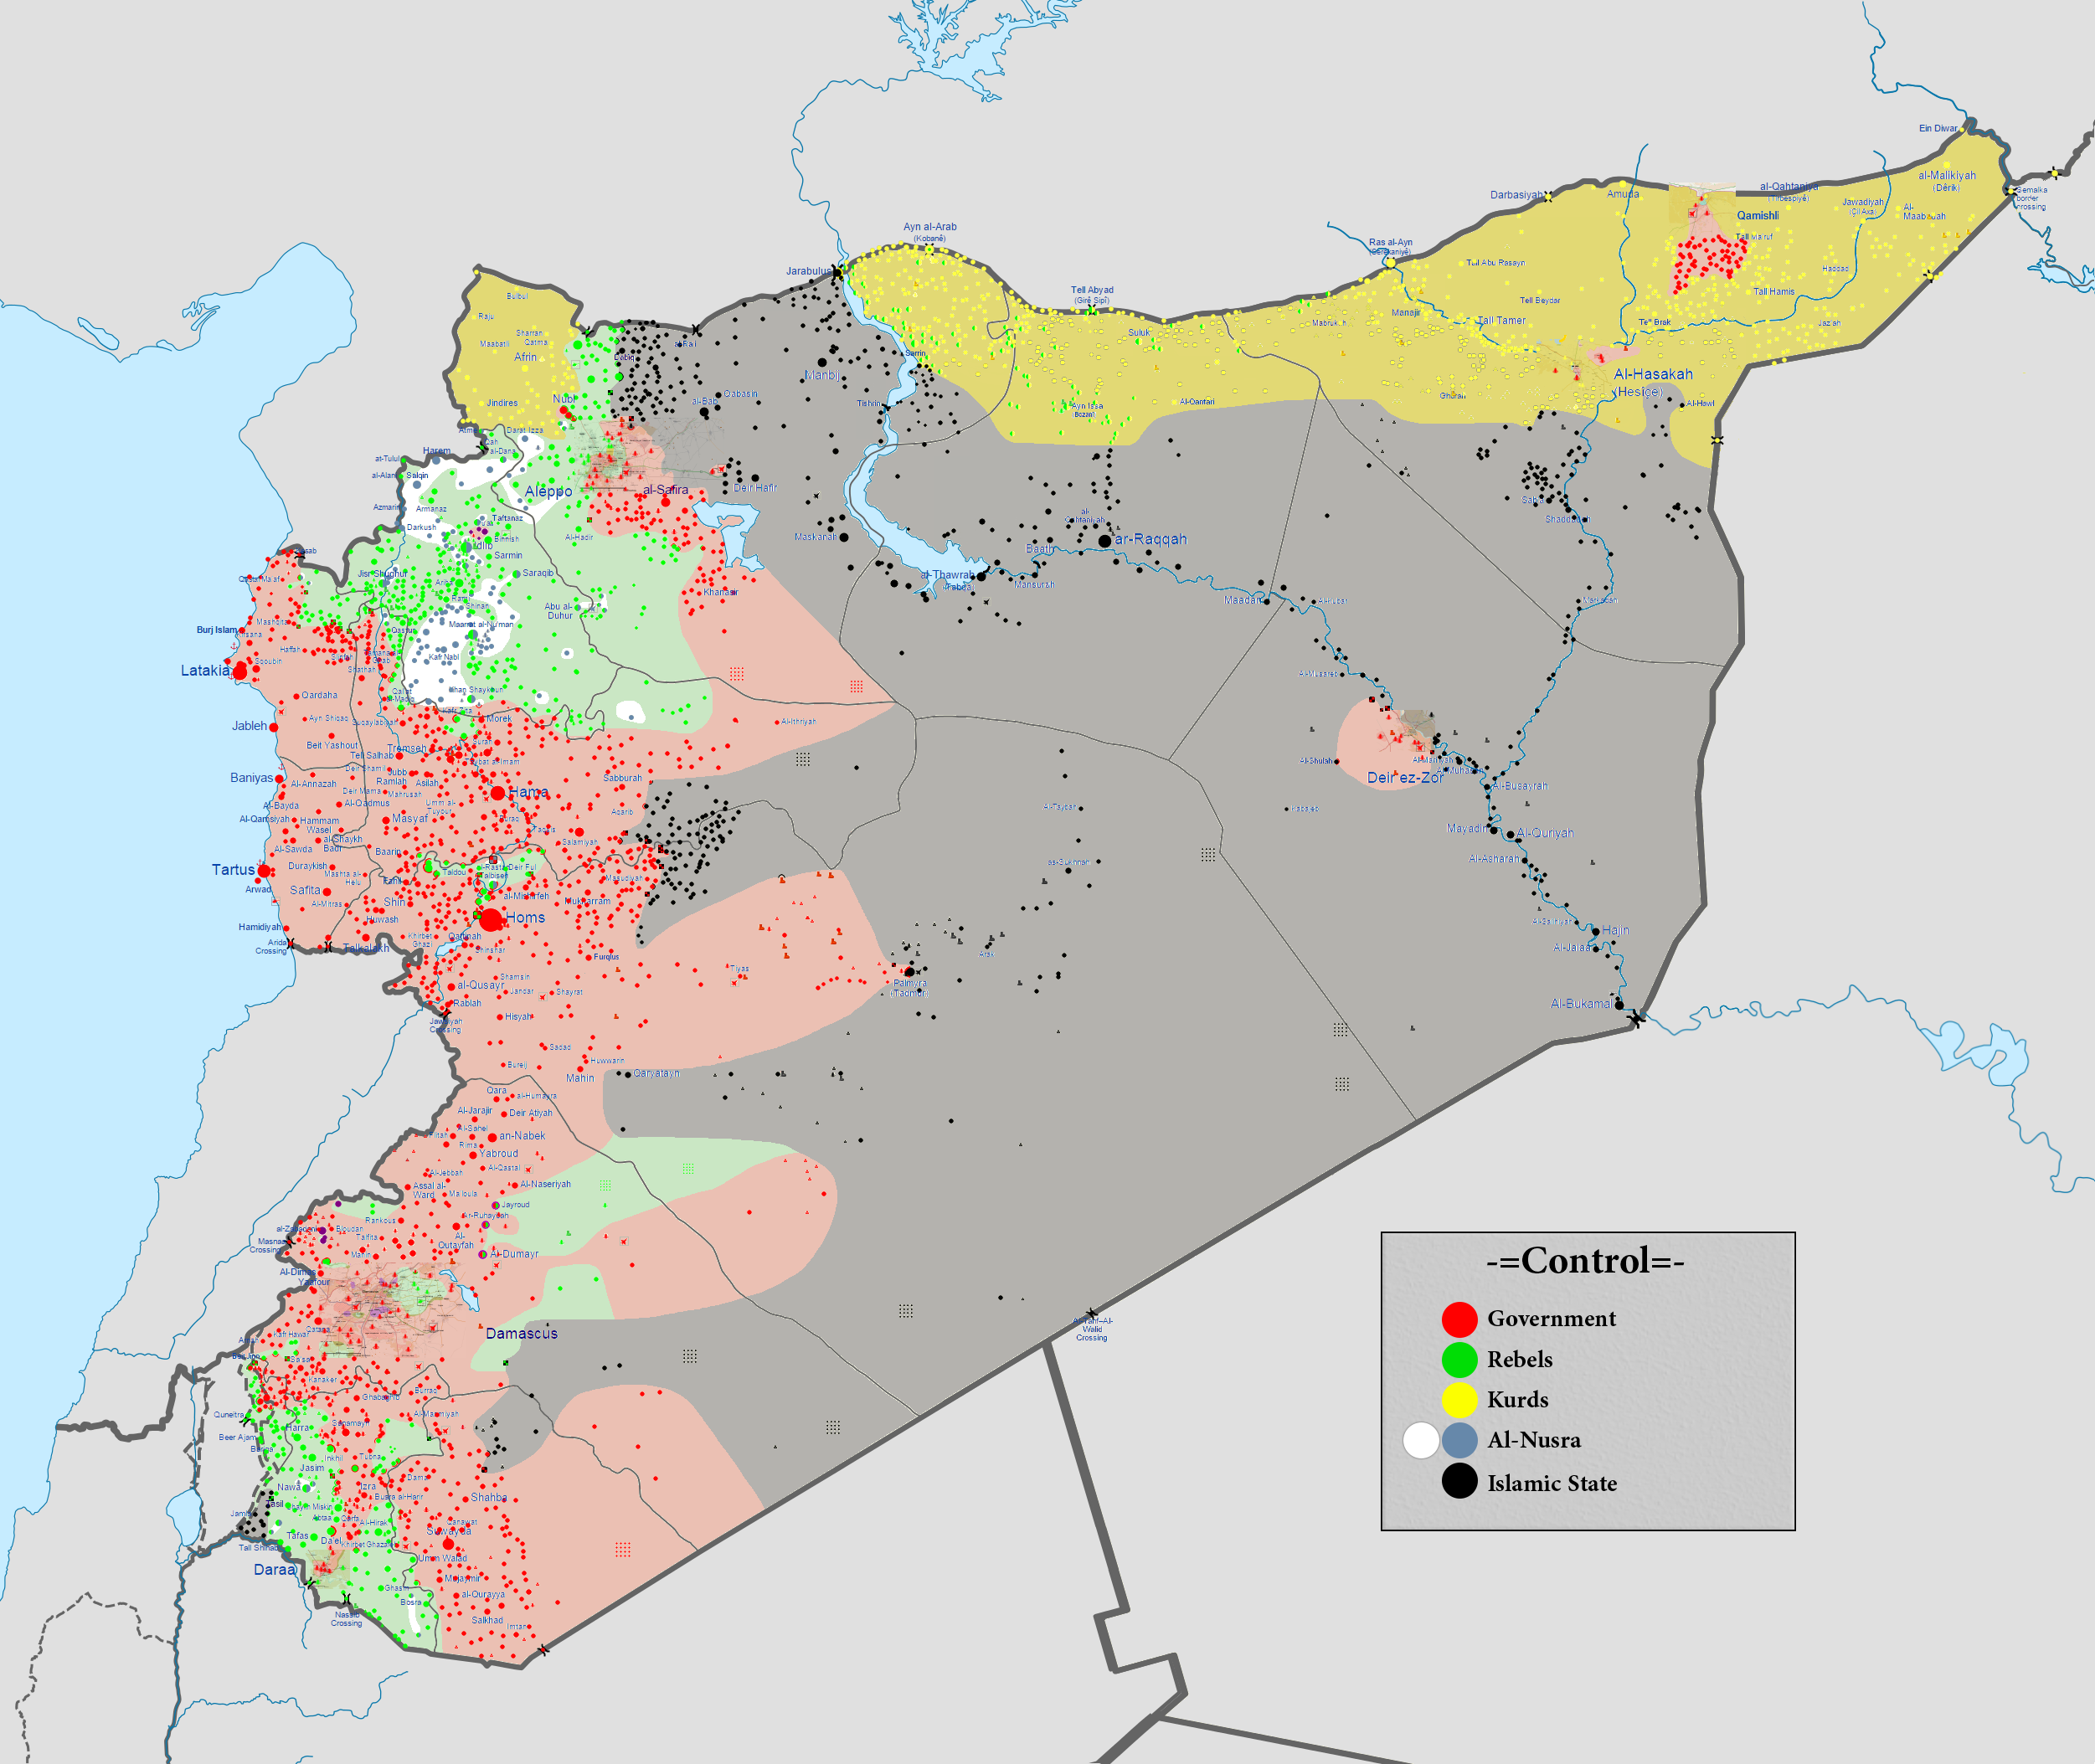 Syrian civil war and migration historybalgowlahboys the following video will attempt to explain the current situation in syria and the wider middle east gumiabroncs Gallery